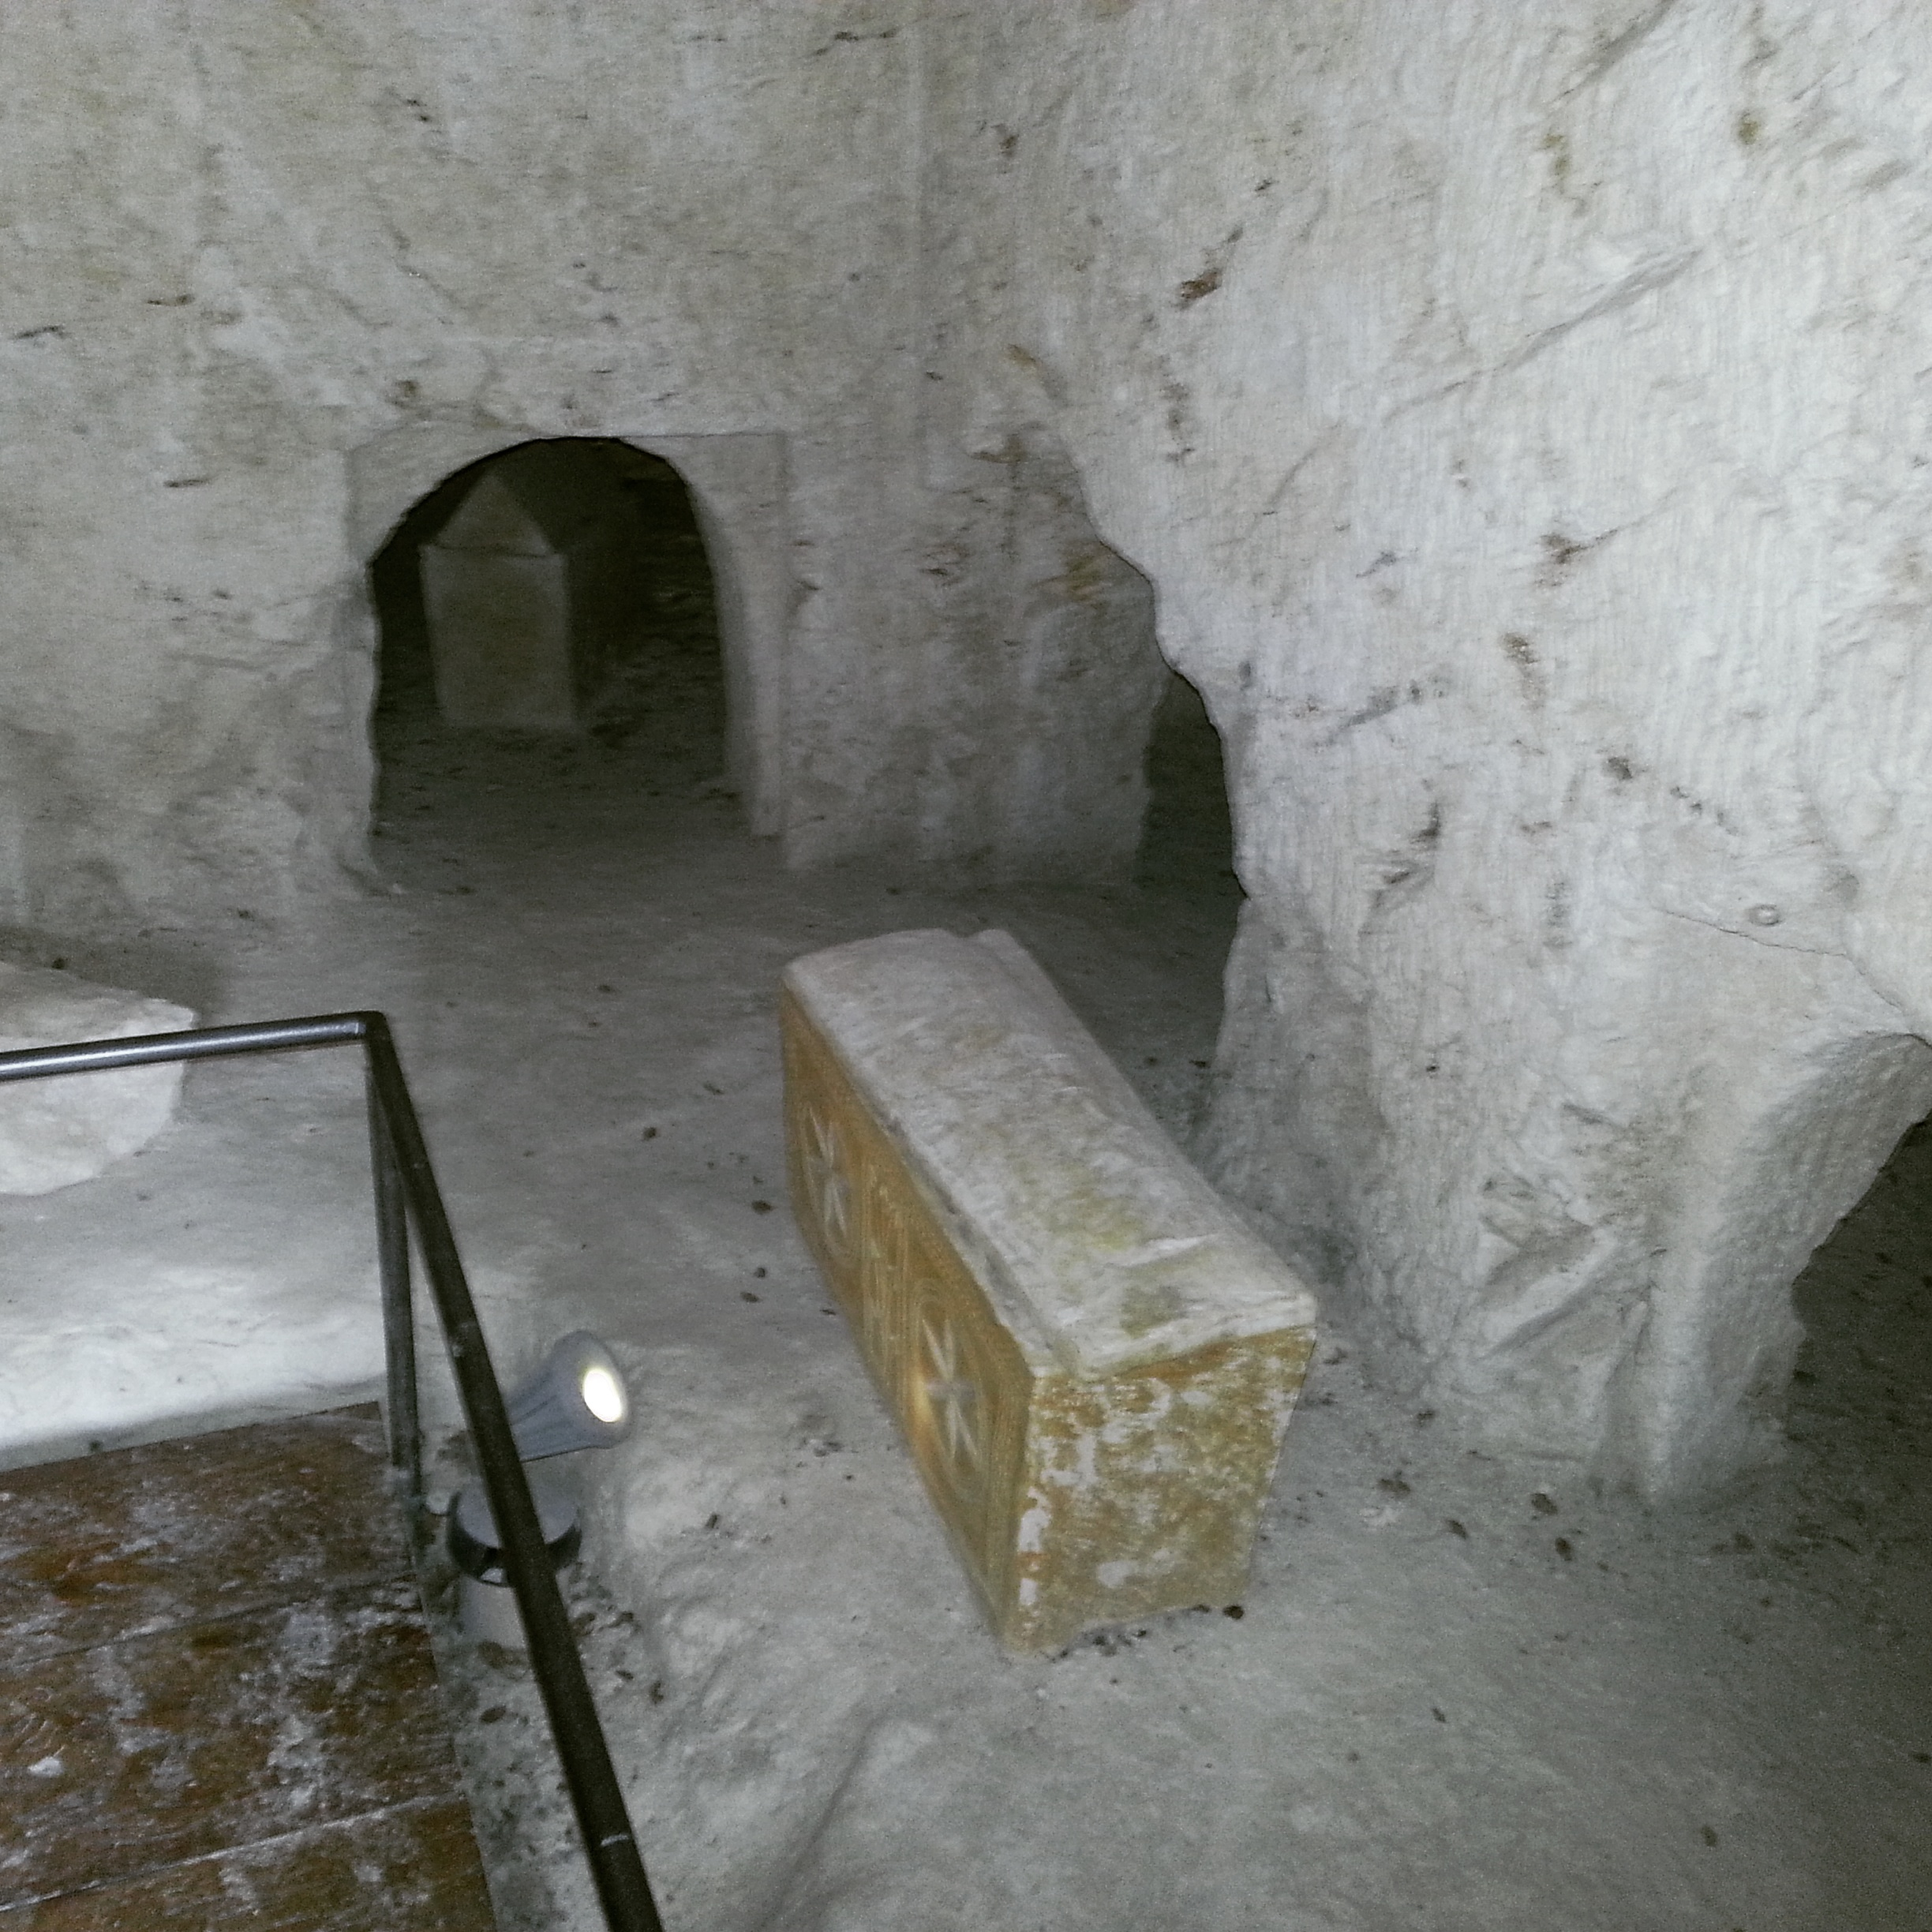 Tomb of Nicanor, Mt Scopus